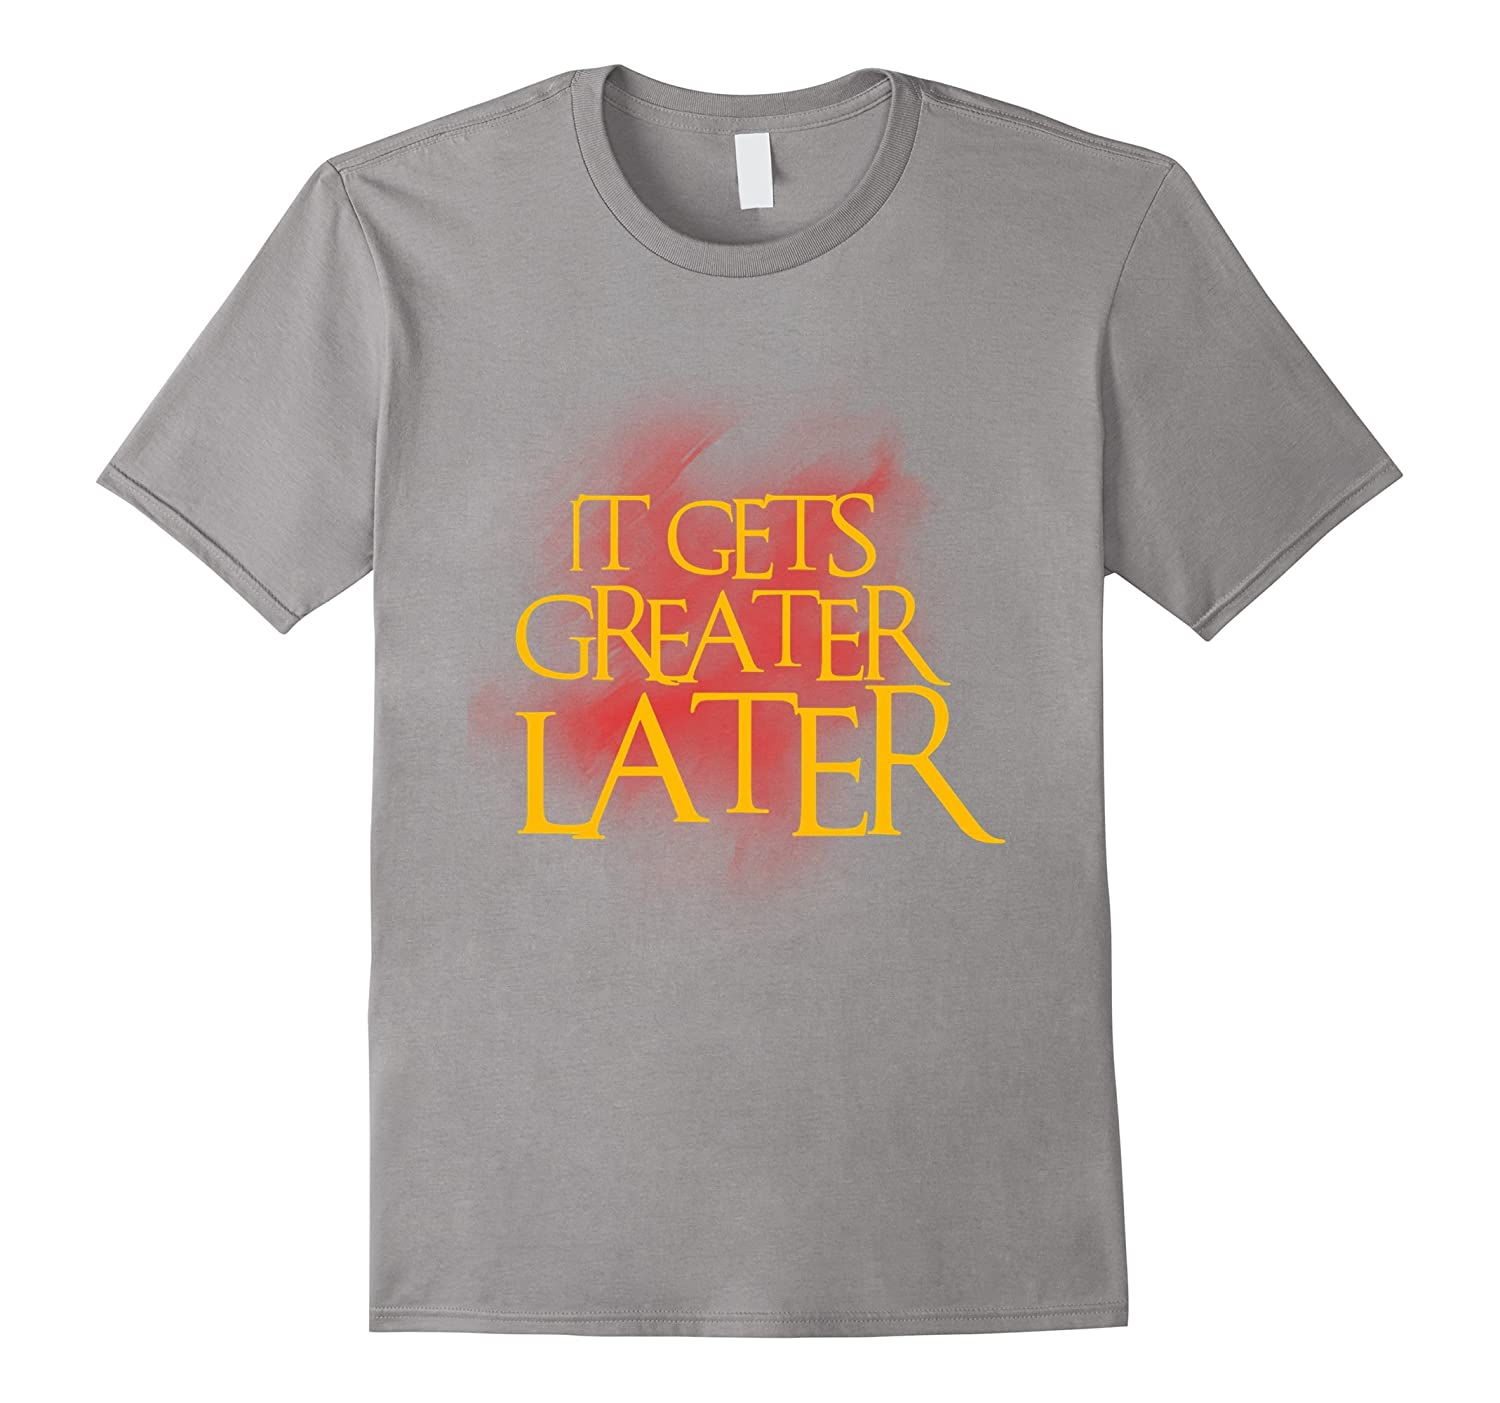 It Gets Greater Later T Shirt Celebrate Recovery Rehab NA AA